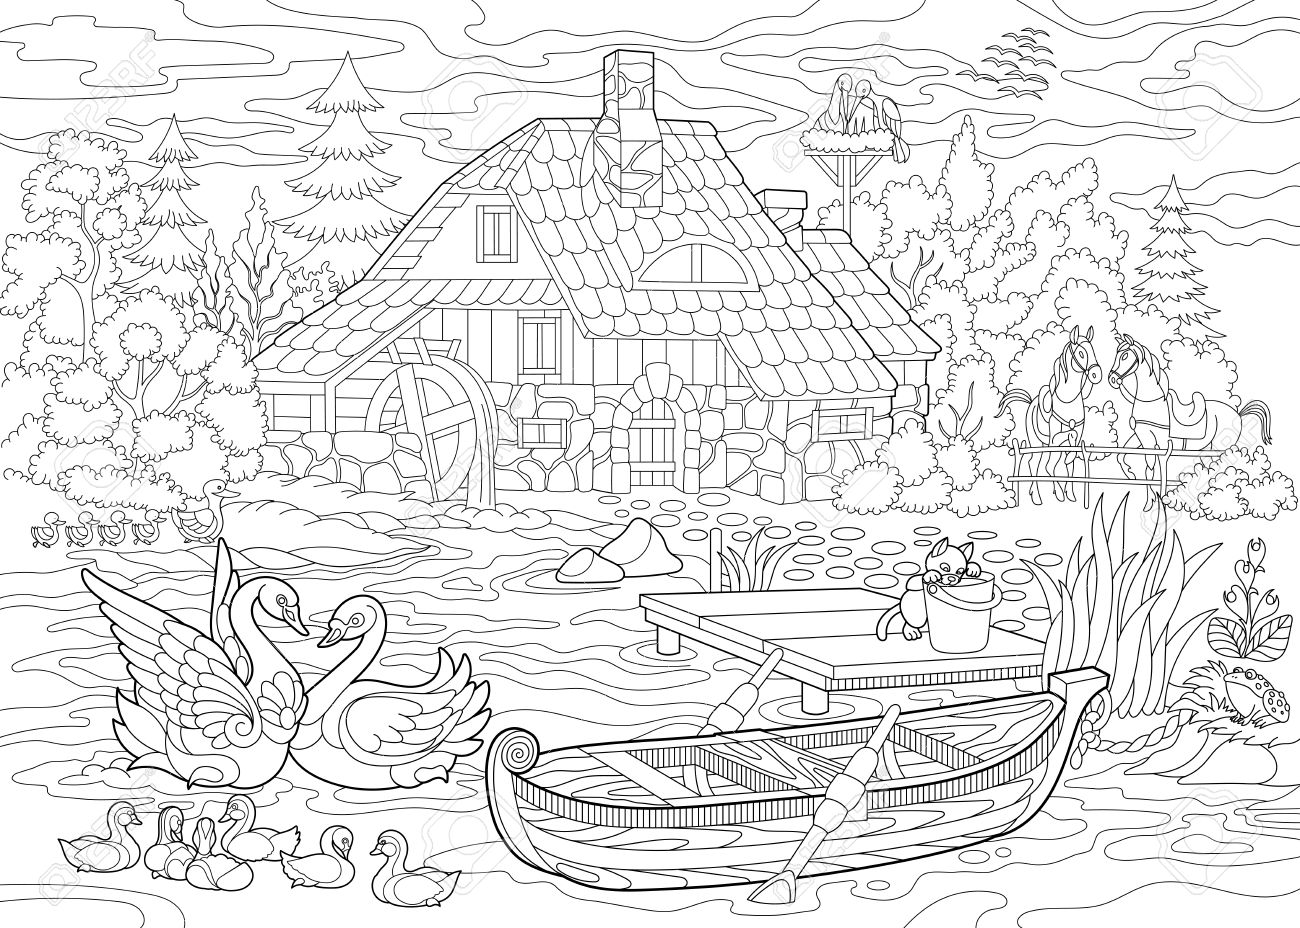 Coloring Book Page Of Rural Landscape Farm House Ducks Kitten Swans